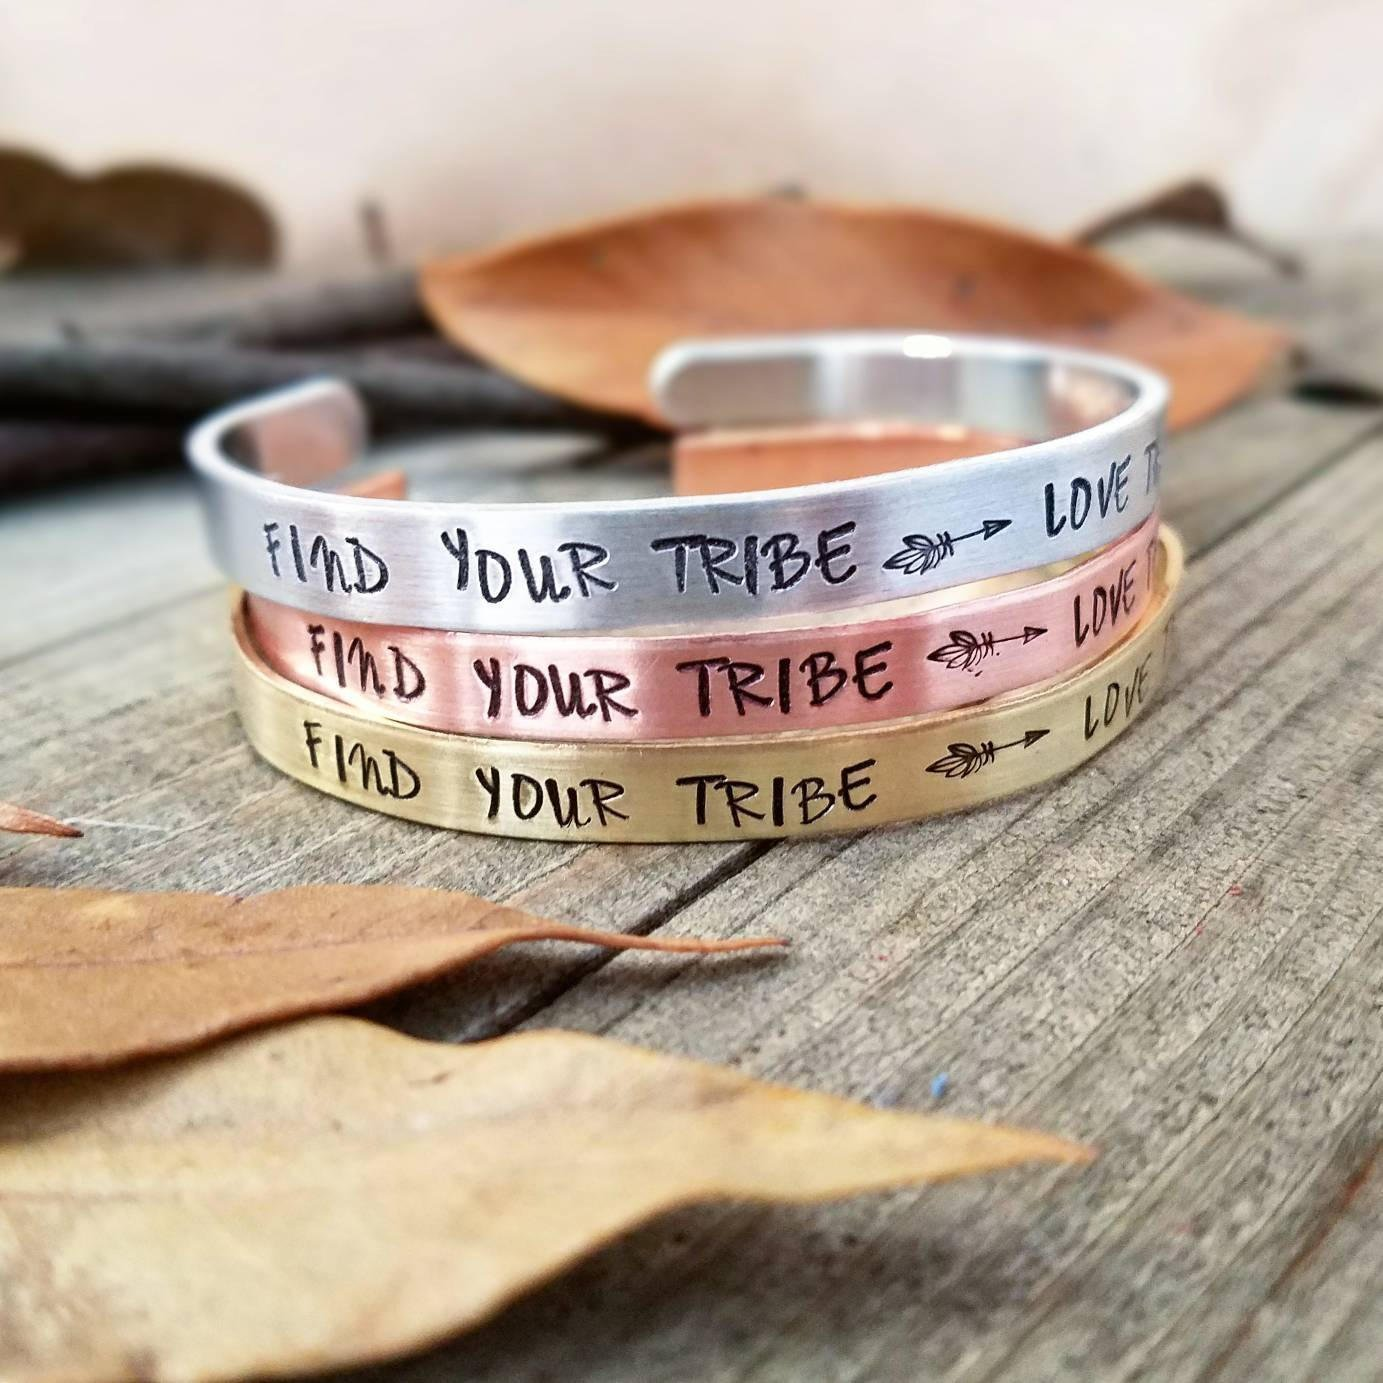 Find your tribe love them hard | stamped cuff bracelet | My Tribe jewelry | Boho stamped gifts | my tribe bracelet | best friend | bff gifts